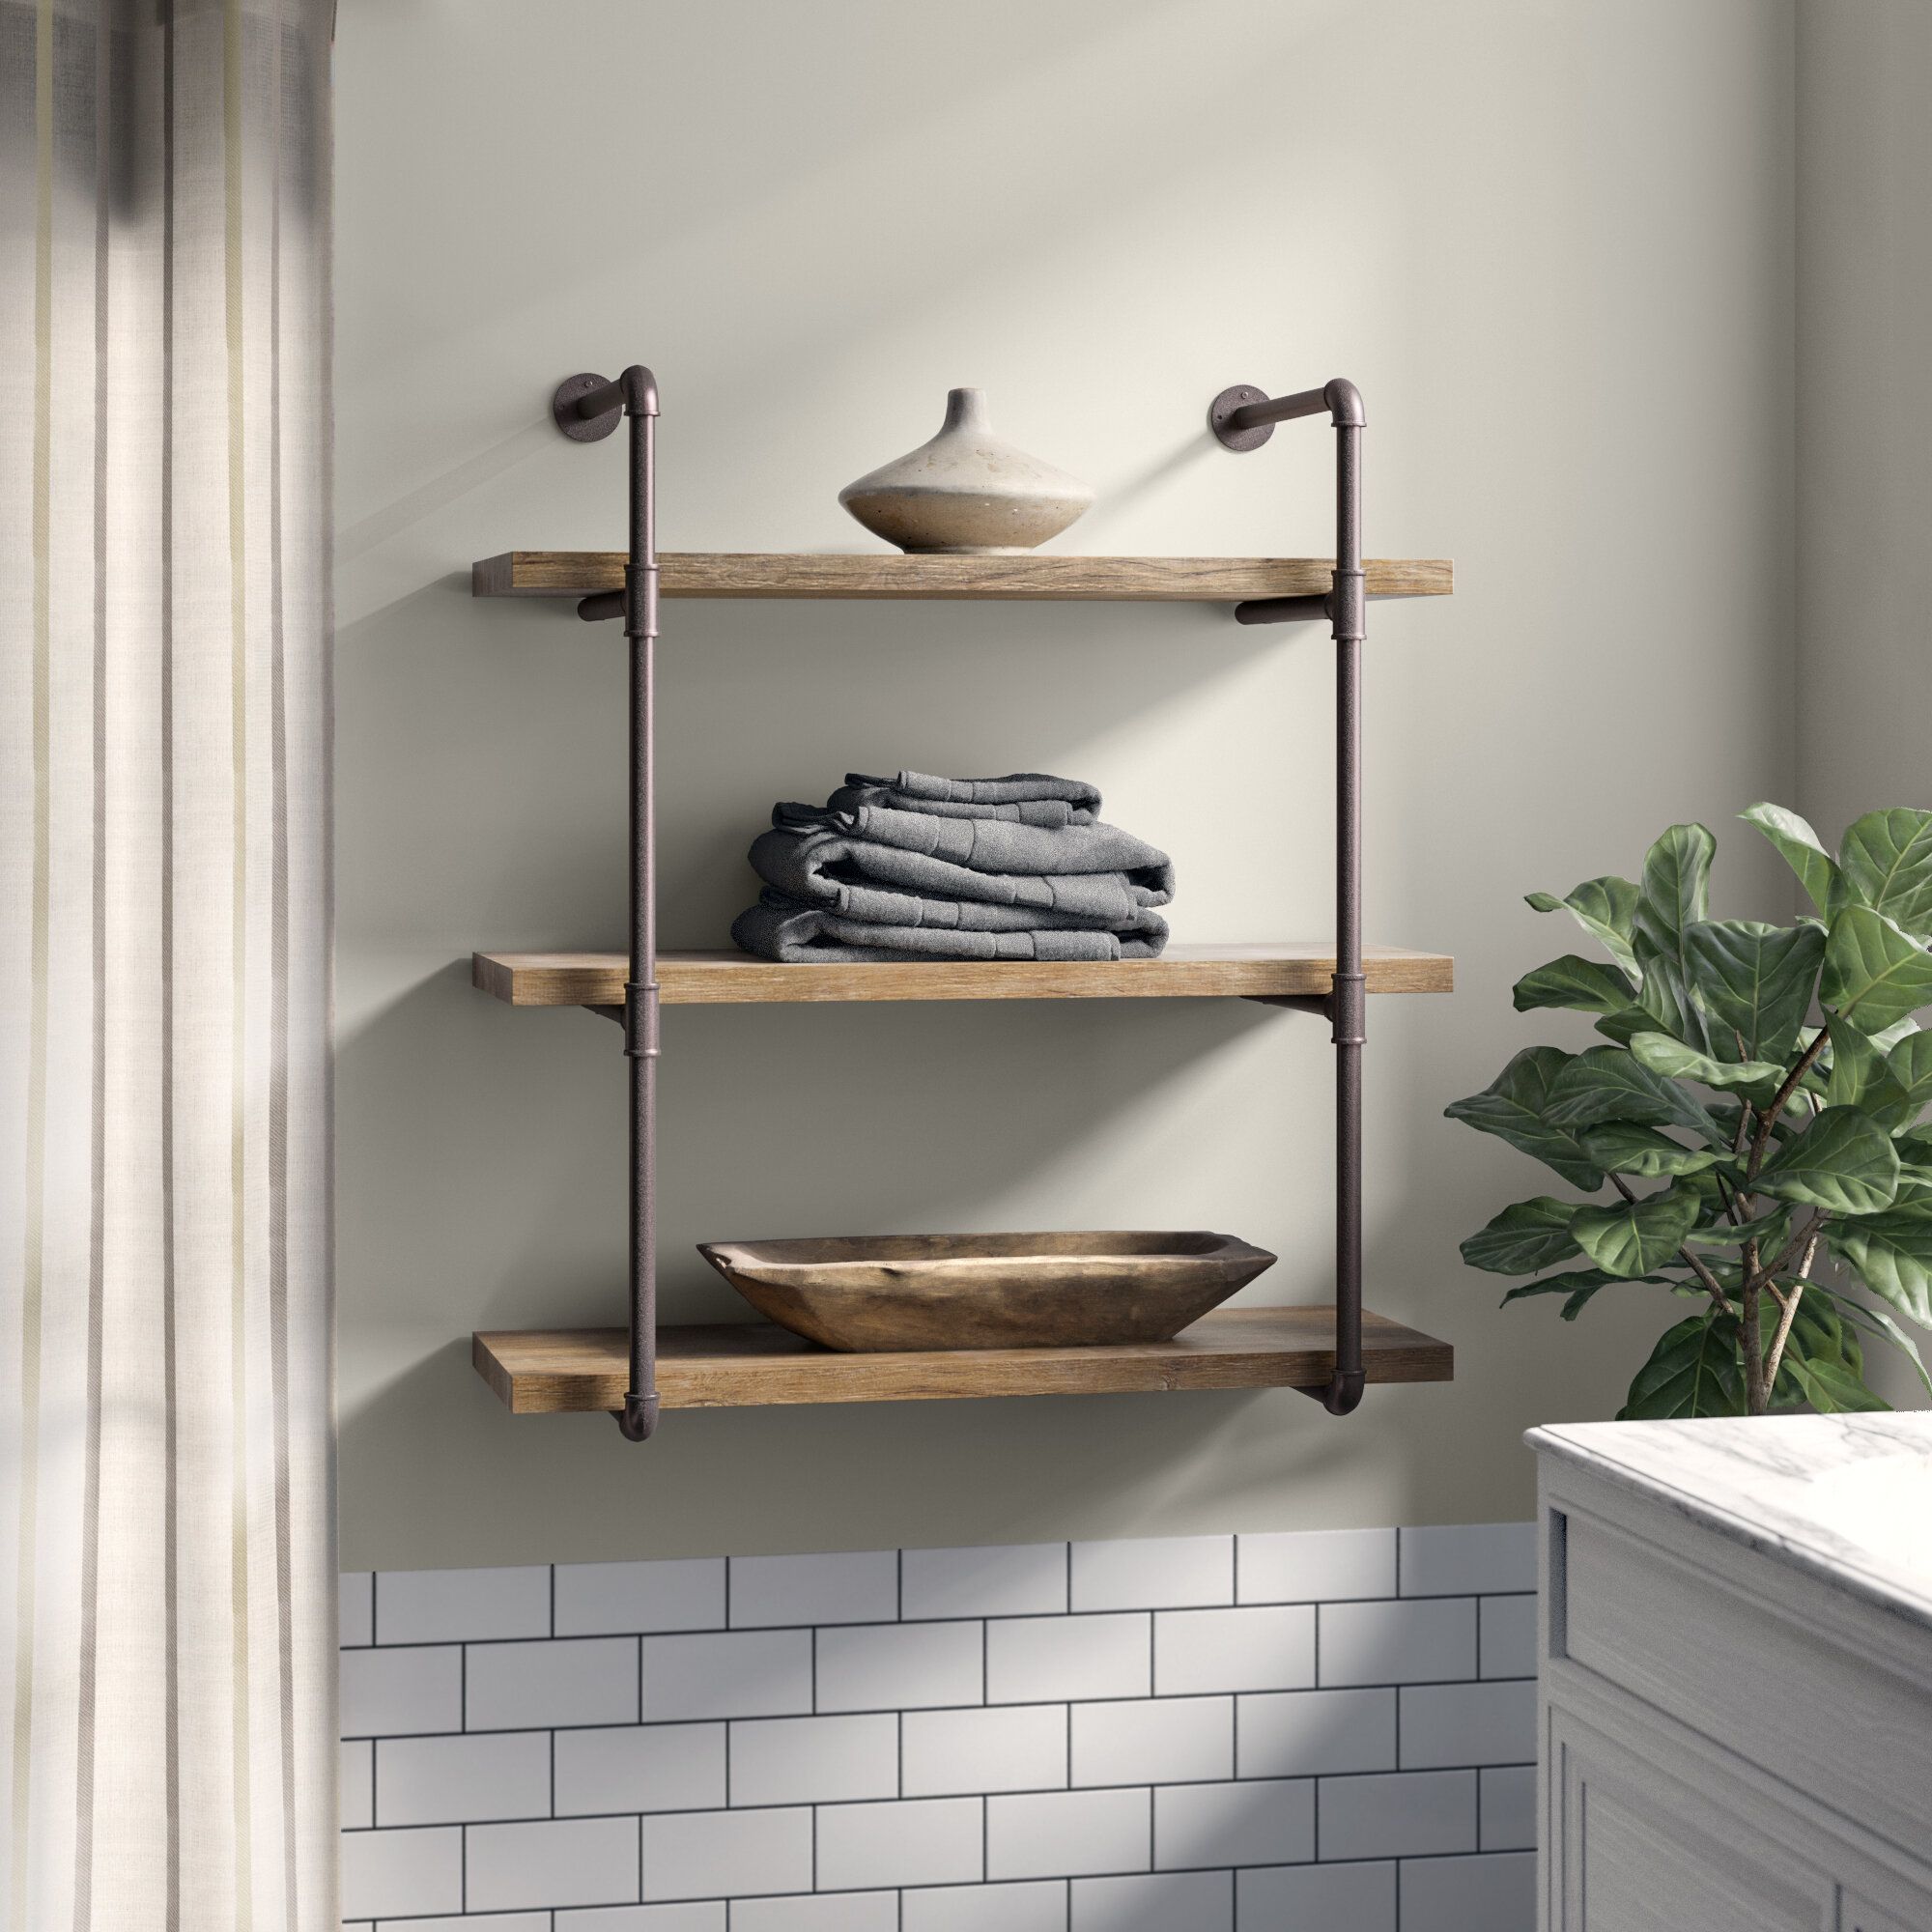 Astonishing Farmhouse Rustic Decorative Shelving Birch Lane Best Image Libraries Barepthycampuscom